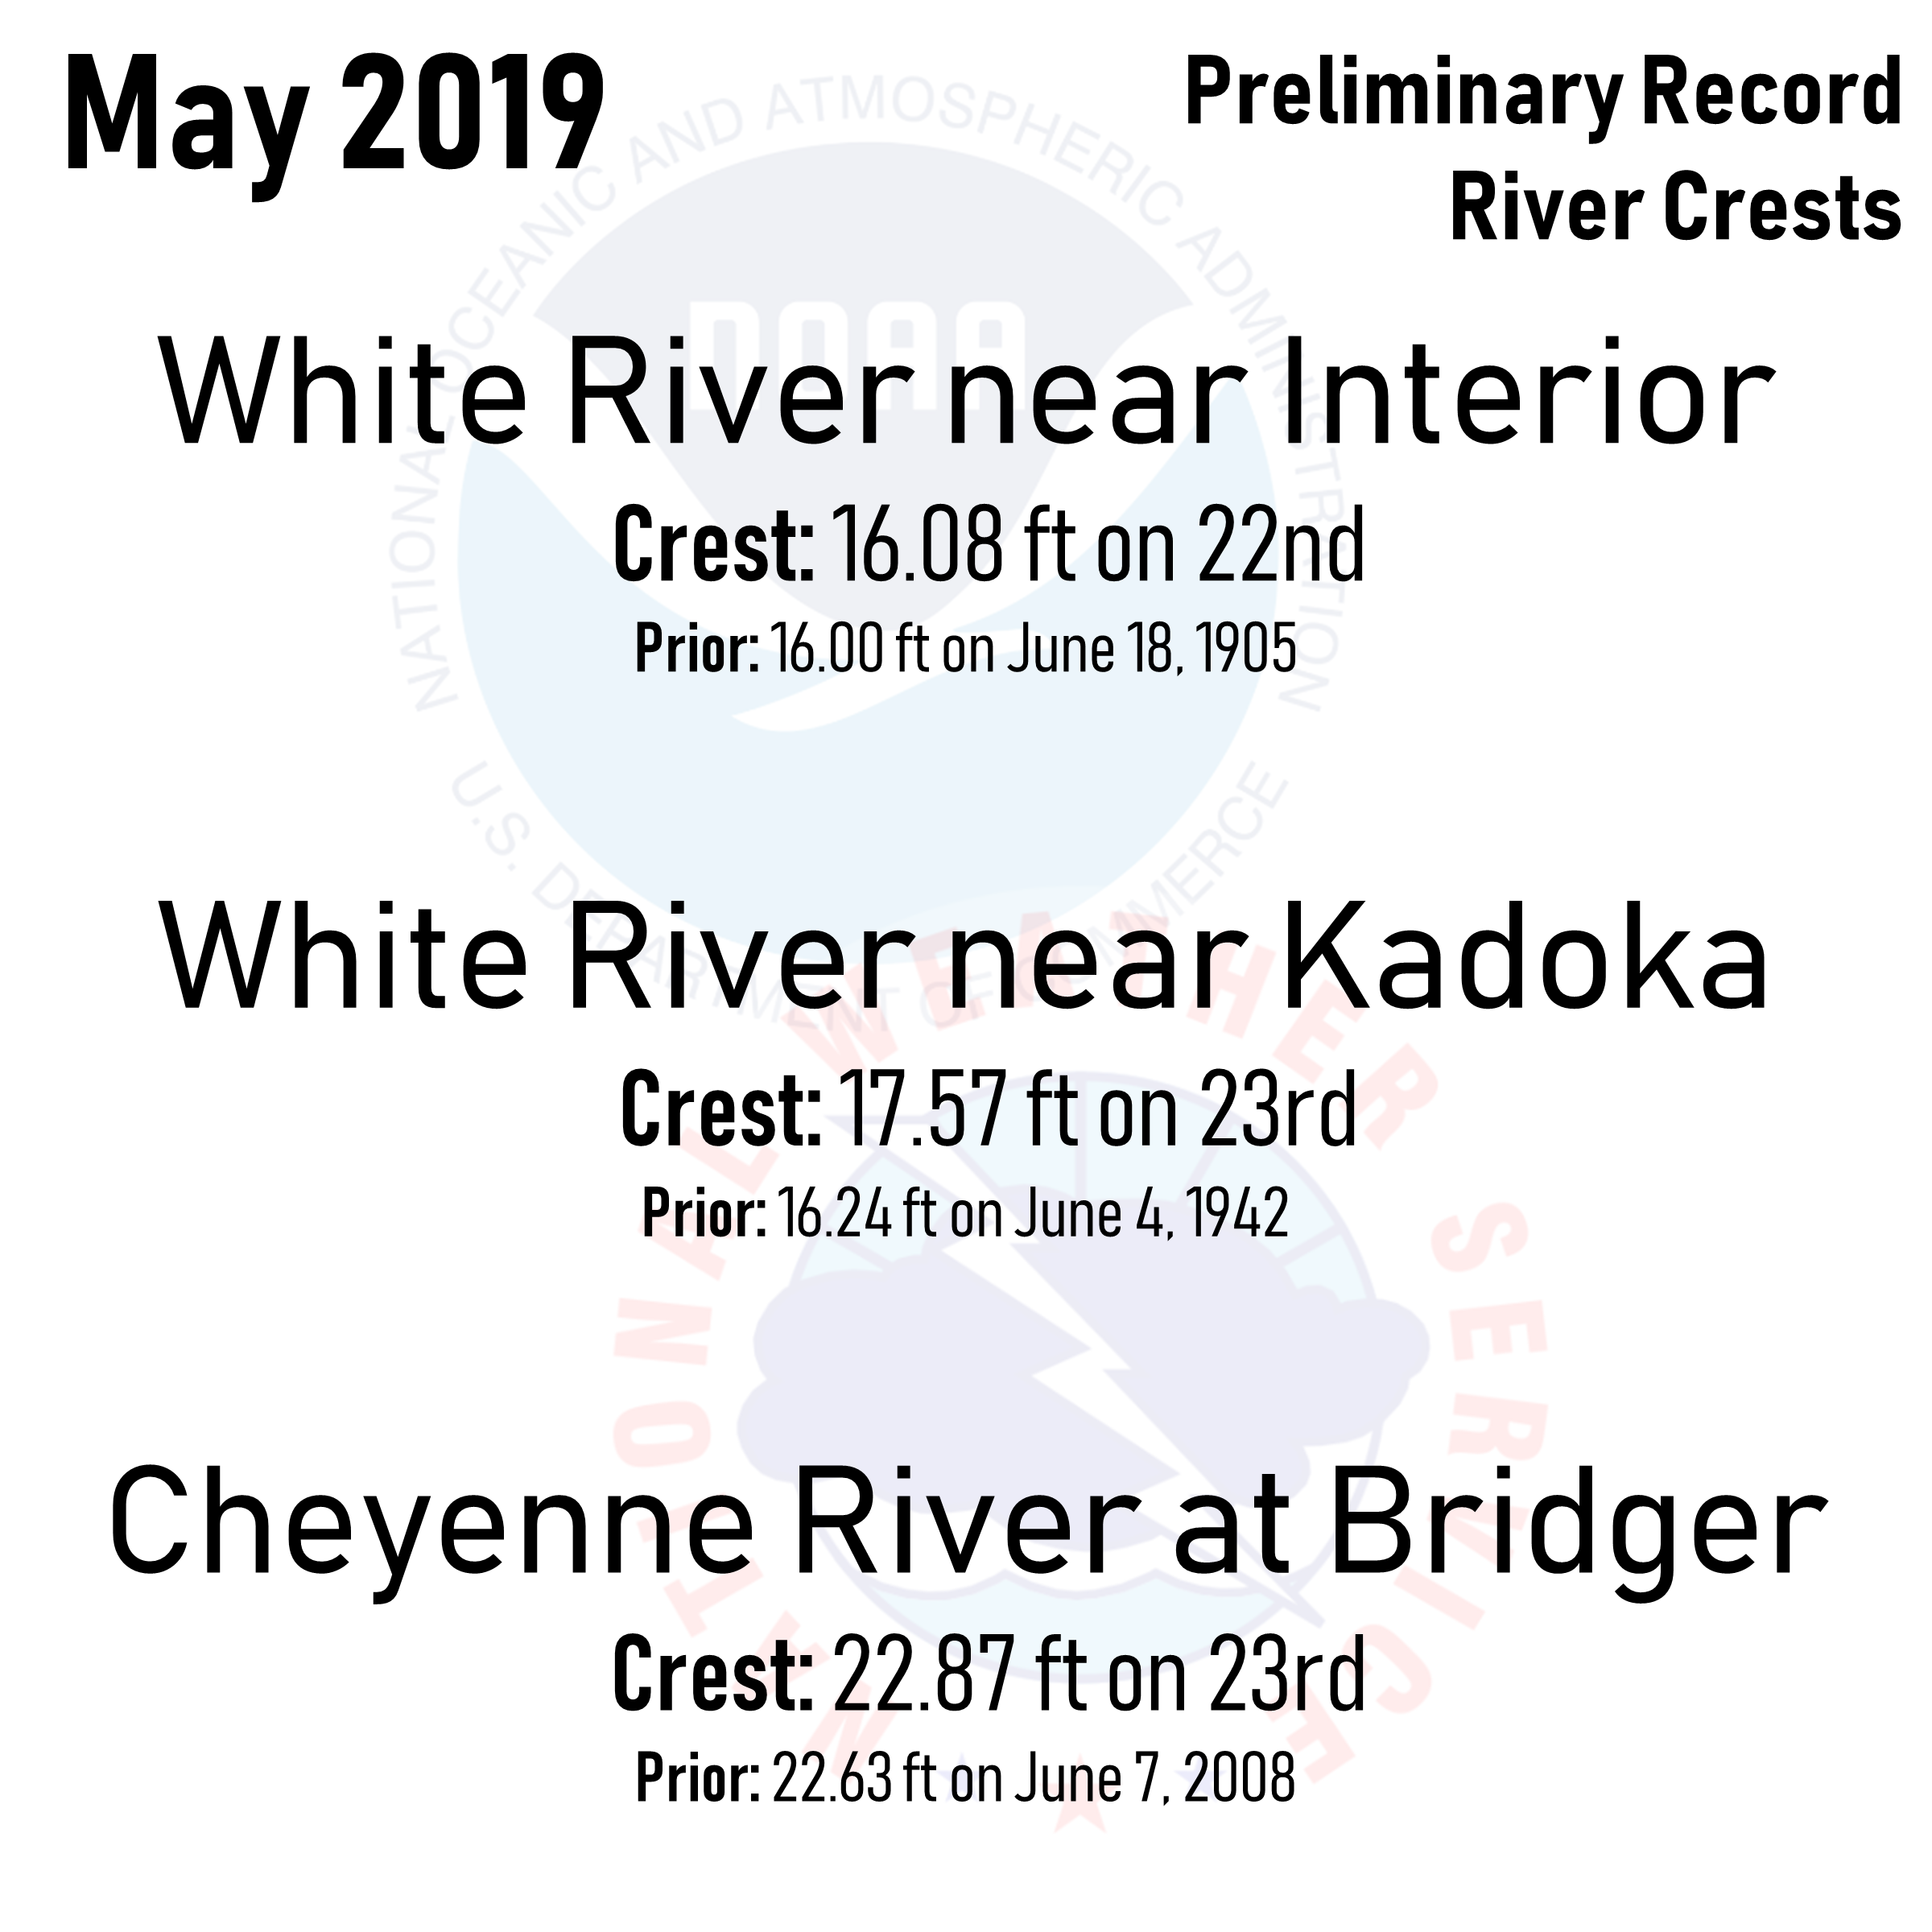 May 2019 Preliminary Record River Crests